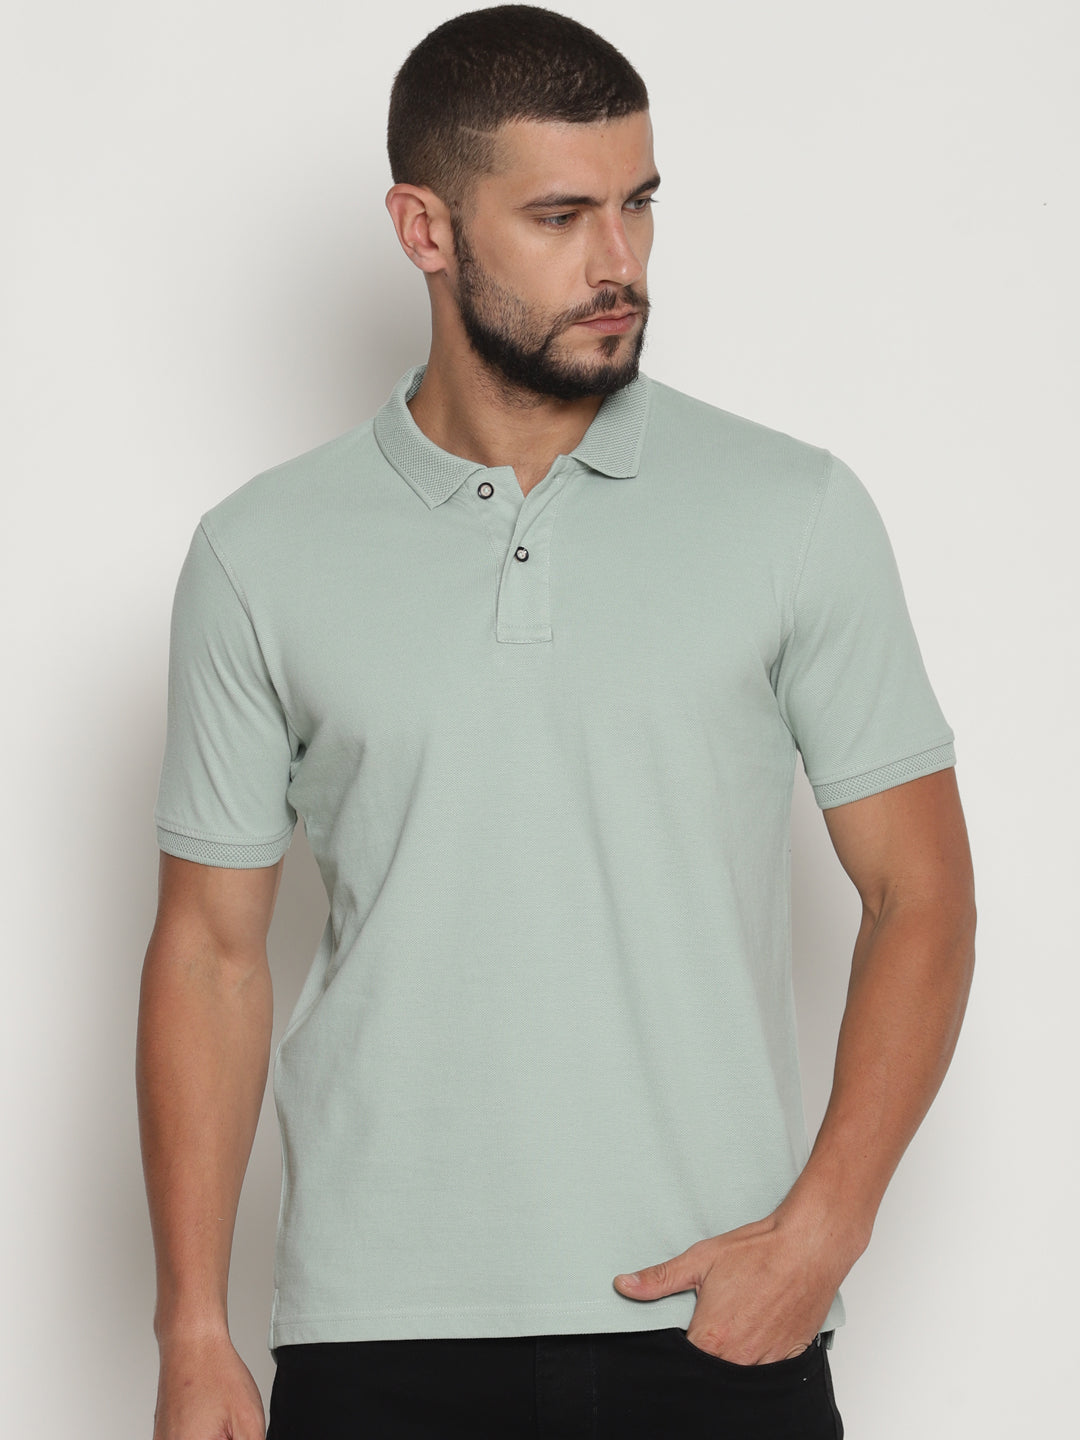 Men's Silt Green Pastel Edition Polo T-Shirt